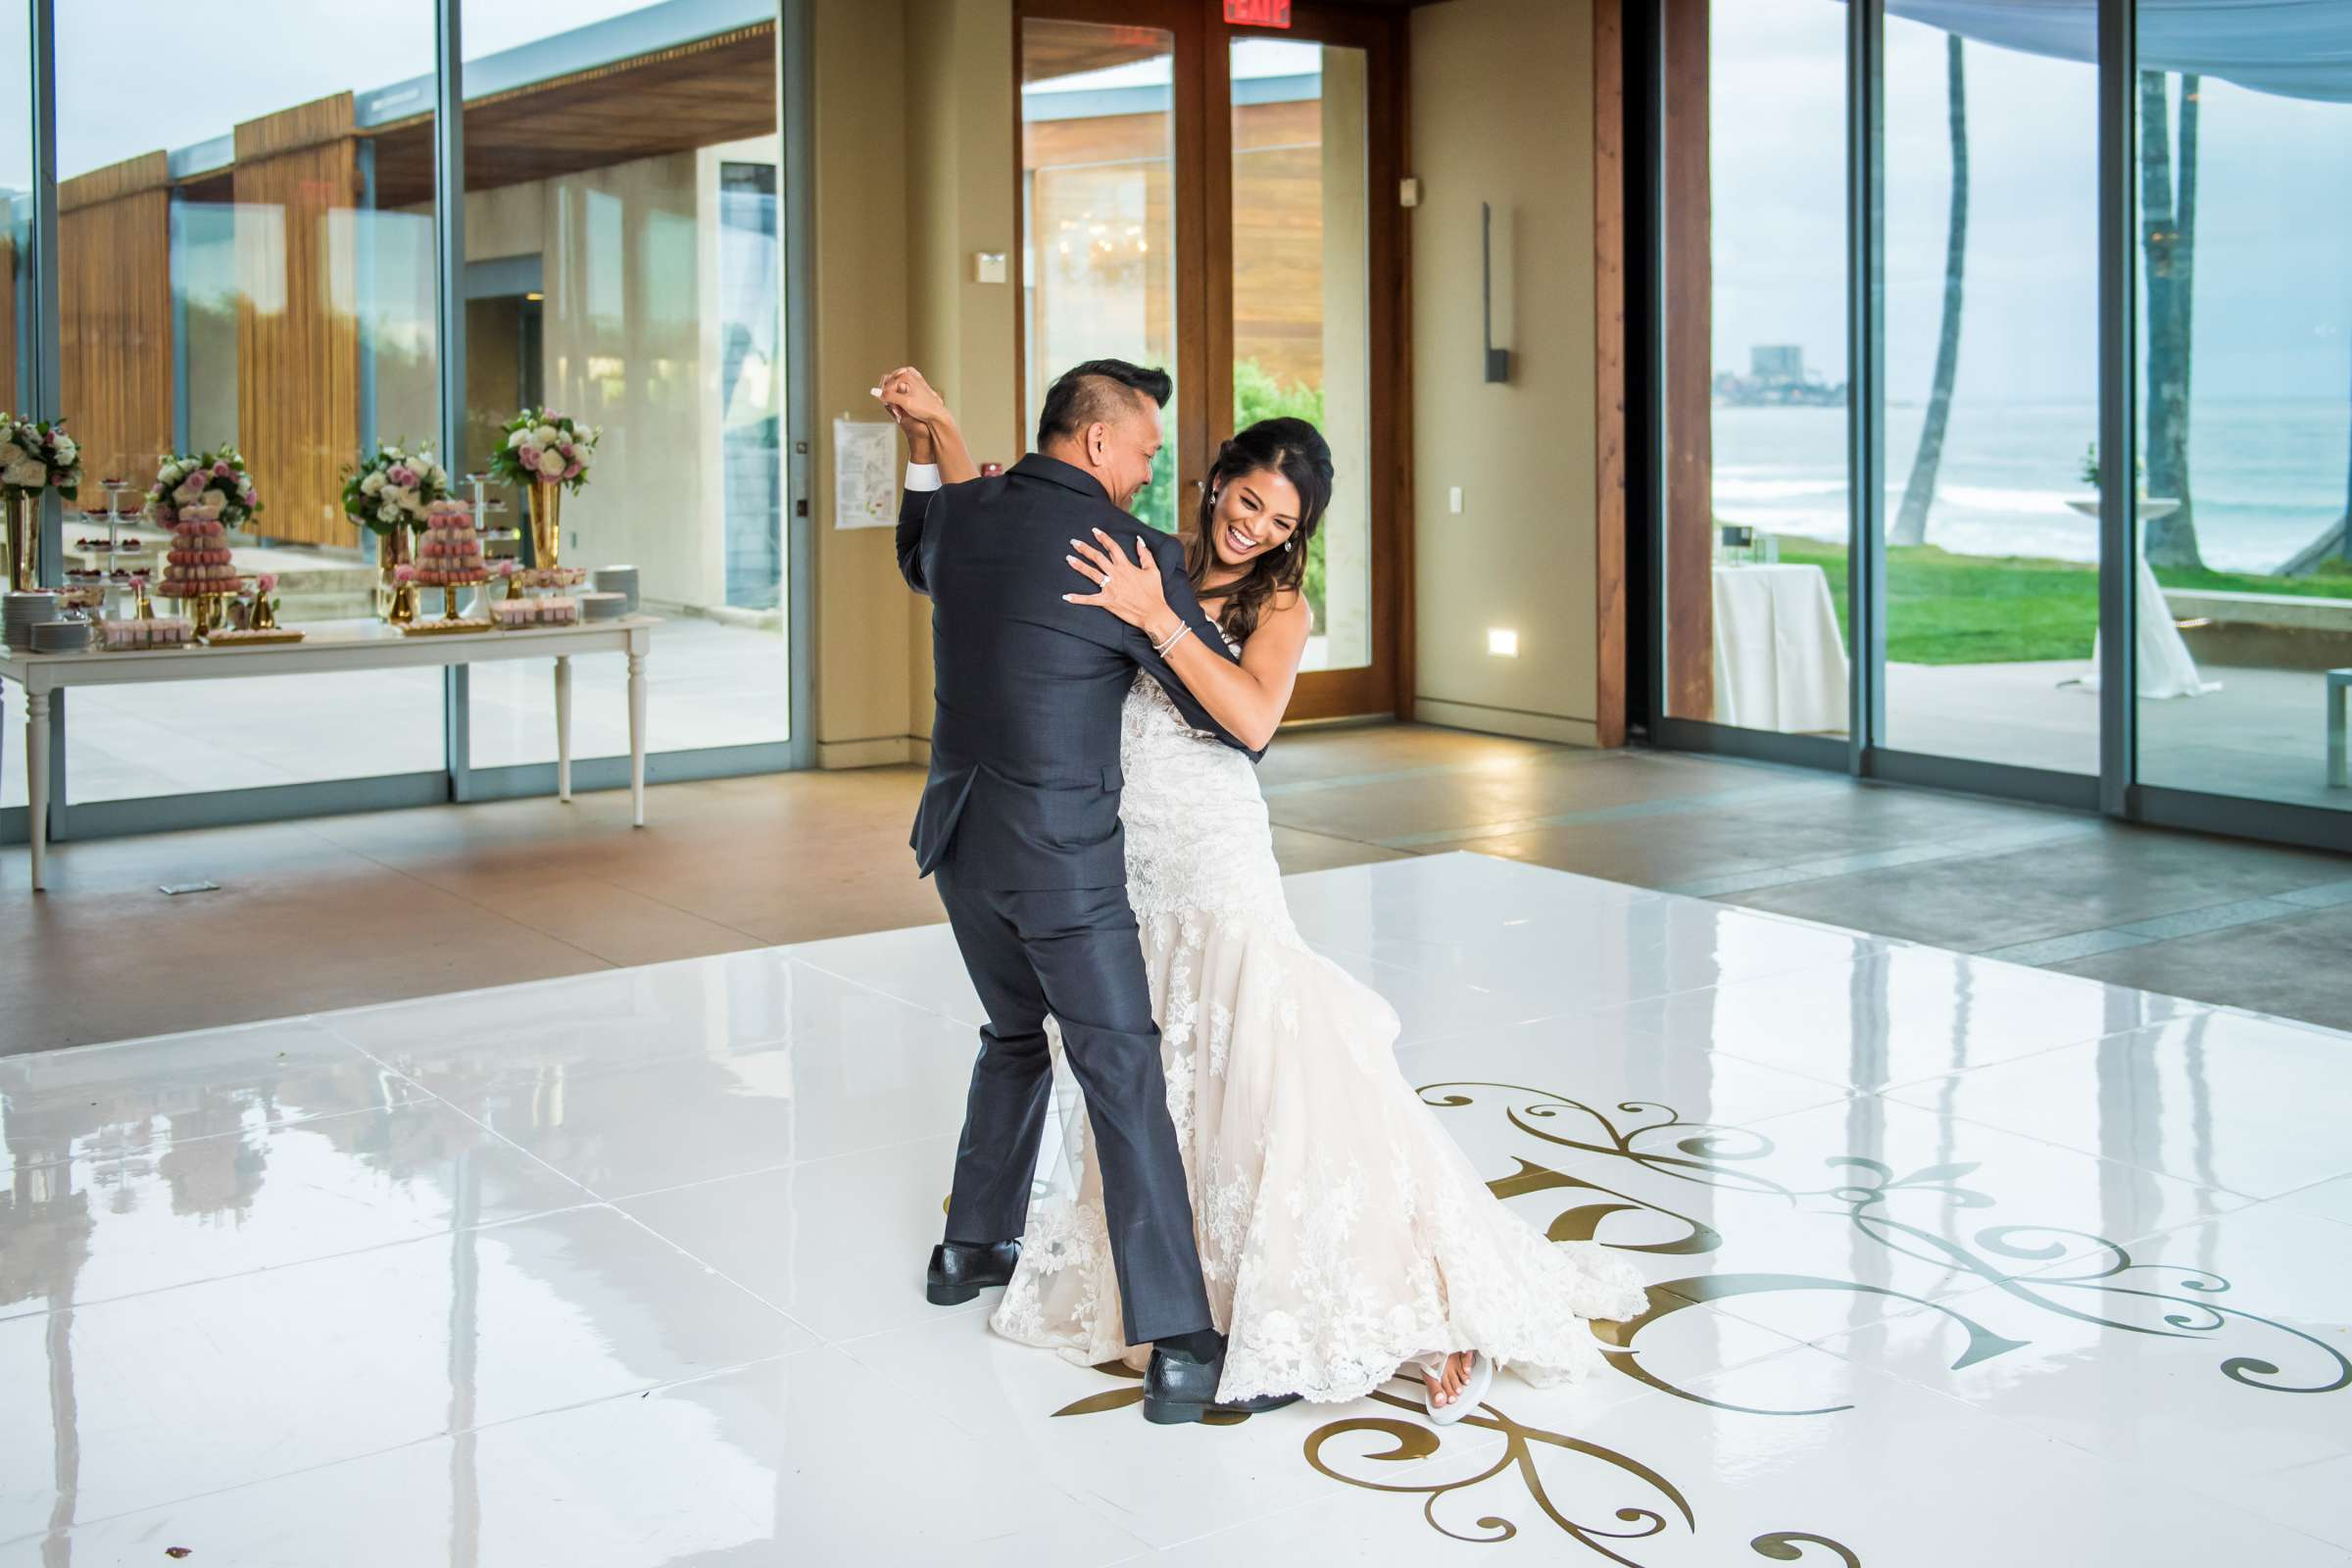 Scripps Seaside Forum Wedding coordinated by Lavish Weddings, Cindy and Justin Wedding Photo #381867 by True Photography